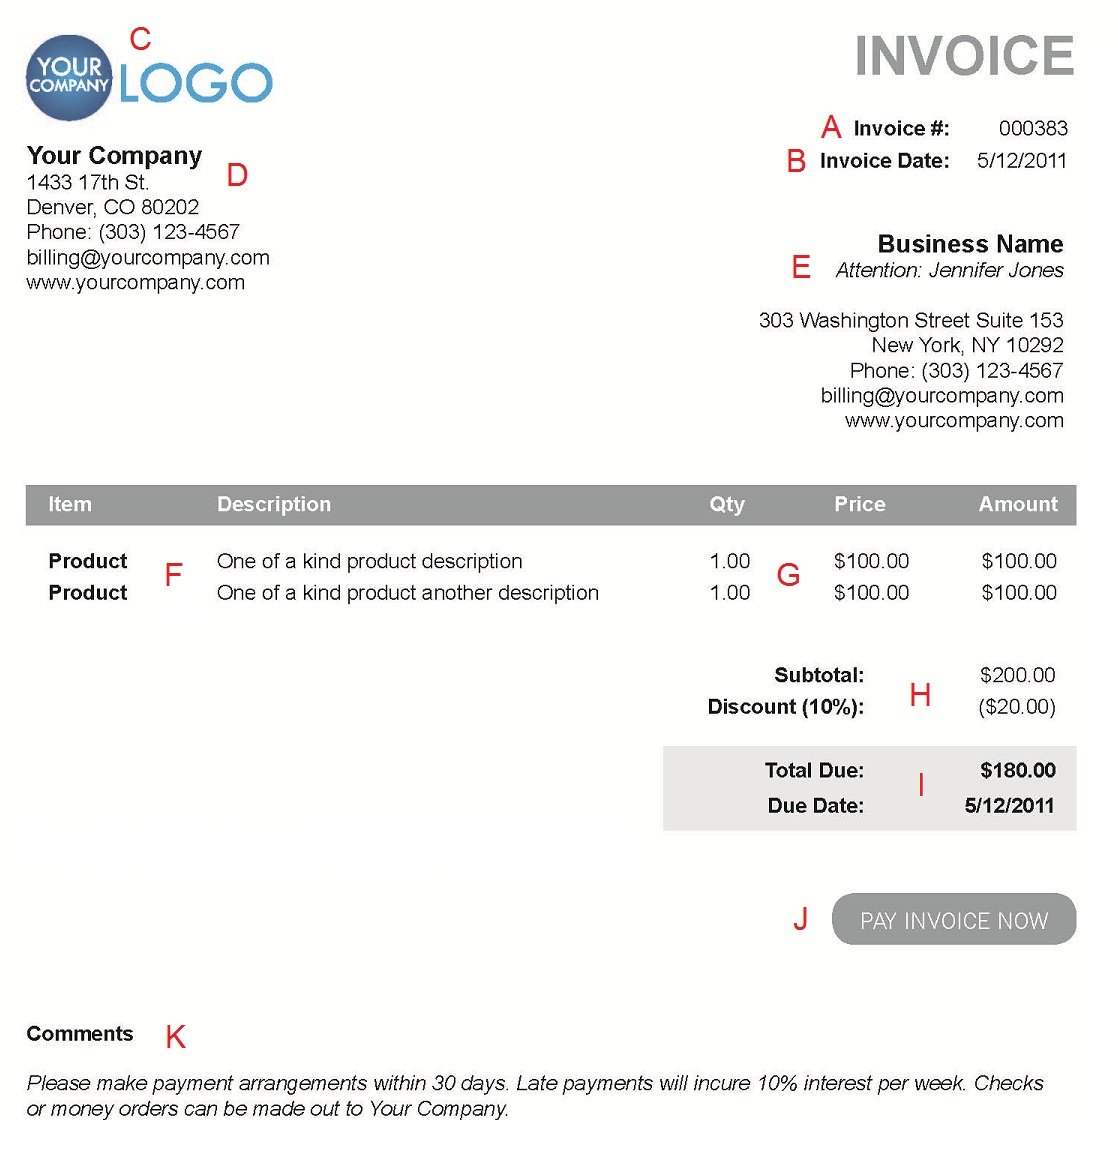 Ultrablogus  Winning The  Different Sections Of An Electronic Payment Invoice With Extraordinary A  With Charming Video Production Invoice Template Also Pi Invoice In Addition Ebay Sending Invoice And What Is The Definition Of Invoice As Well As Make Invoices Online Additionally Ups Commercial Invoice Form From Paysimplecom With Ultrablogus  Extraordinary The  Different Sections Of An Electronic Payment Invoice With Charming A  And Winning Video Production Invoice Template Also Pi Invoice In Addition Ebay Sending Invoice From Paysimplecom